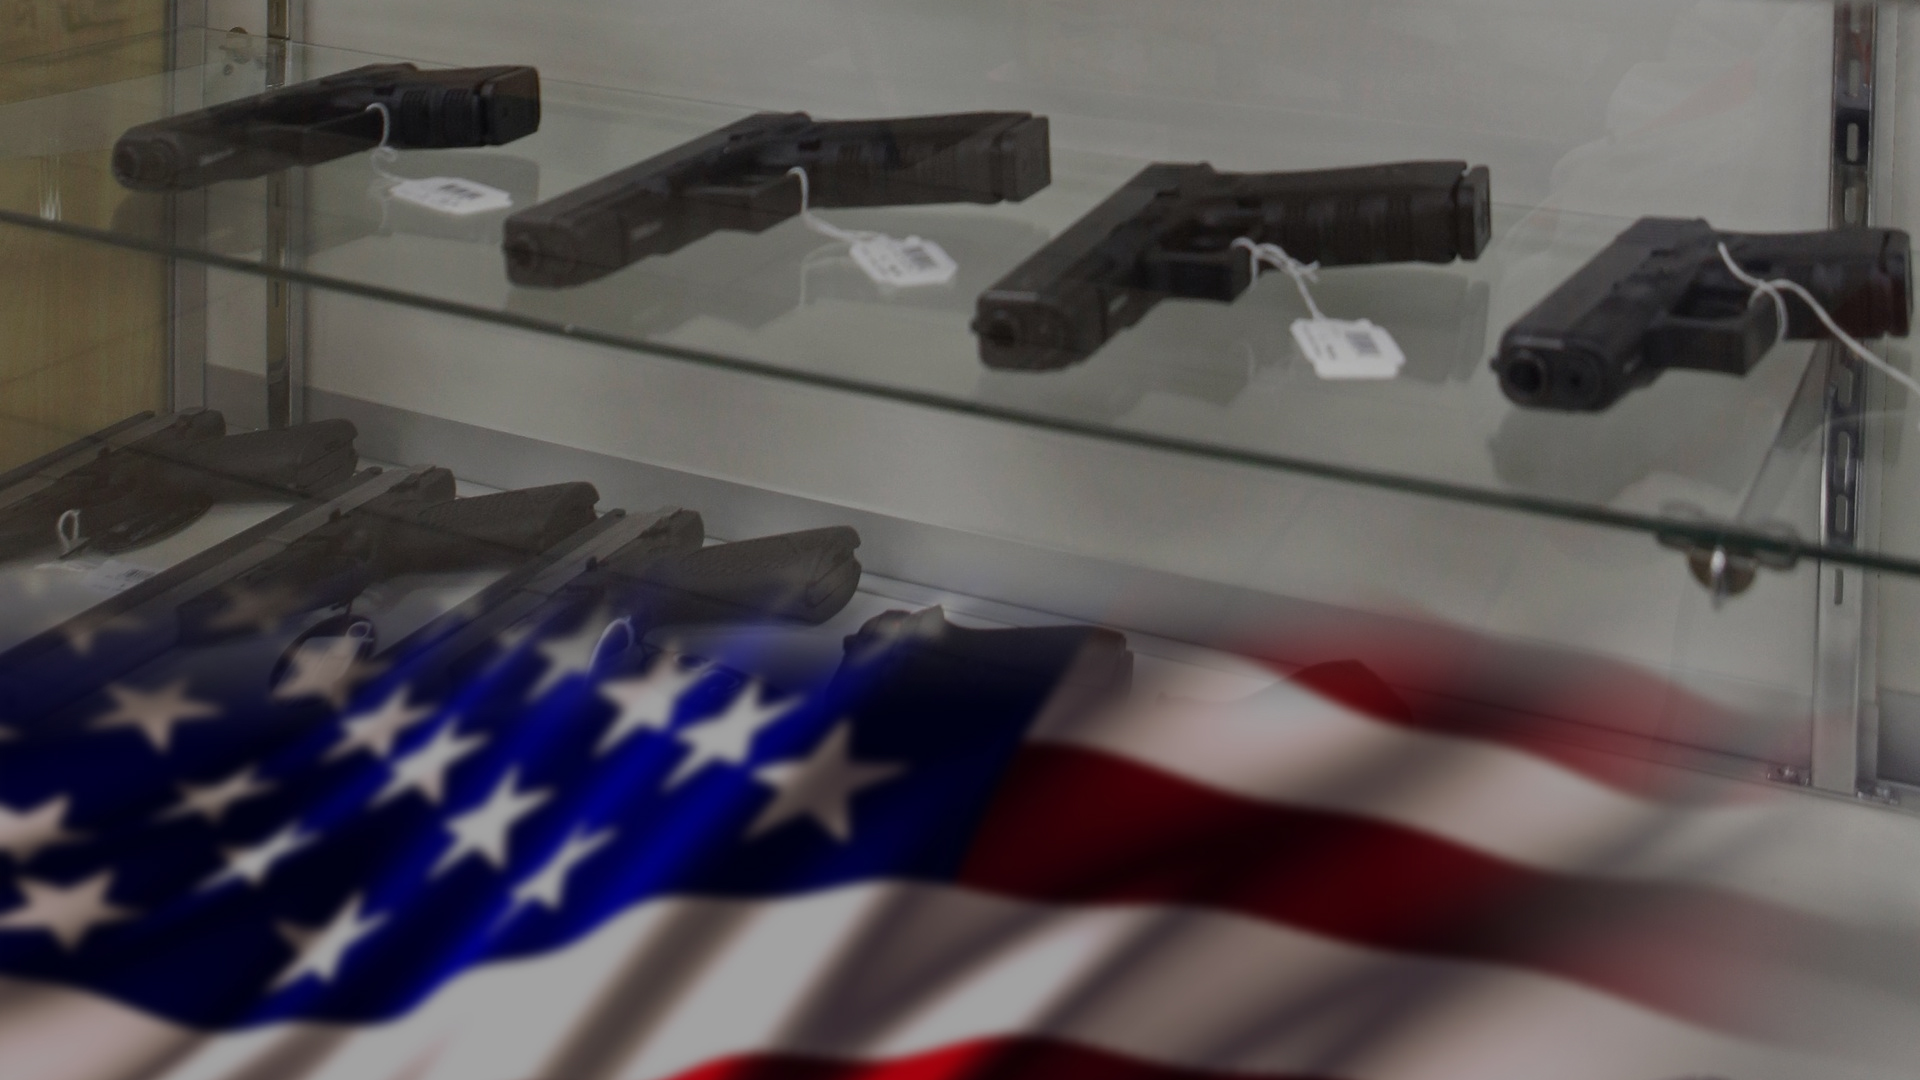 Why has public support for gun control decreased? | PBS NewsHour